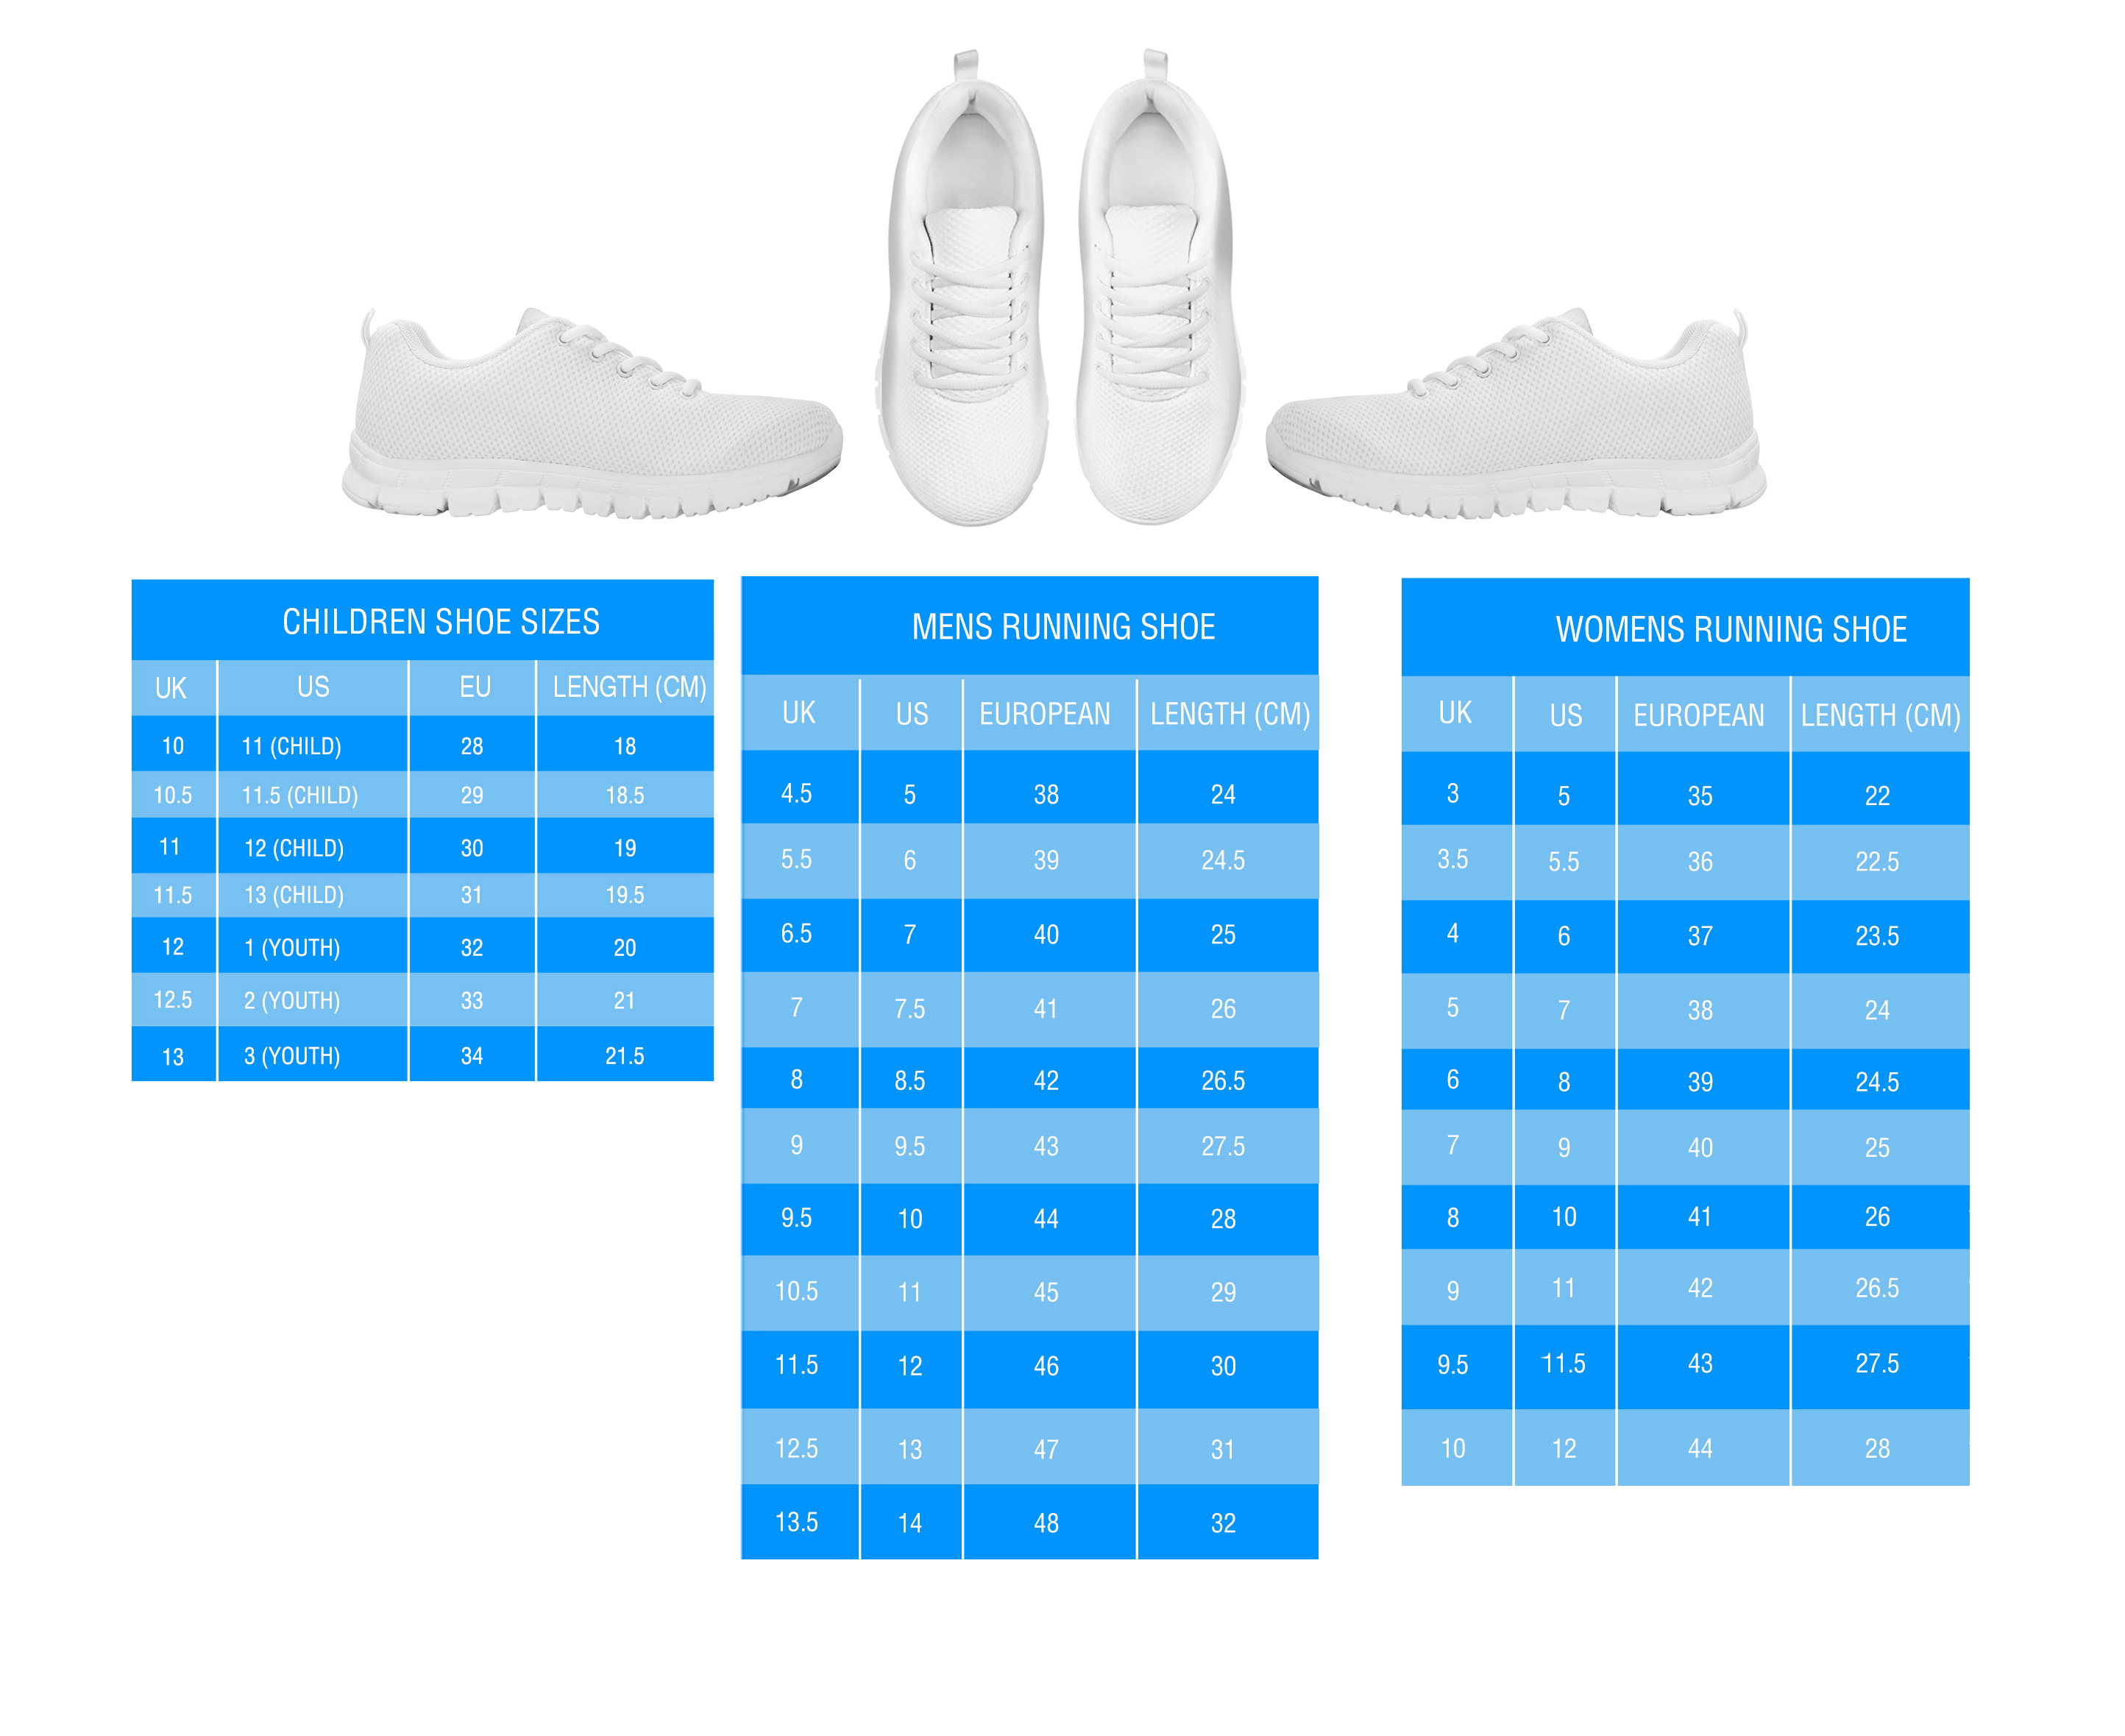 SNEAKERS | Pillow Profits Knowledge Base